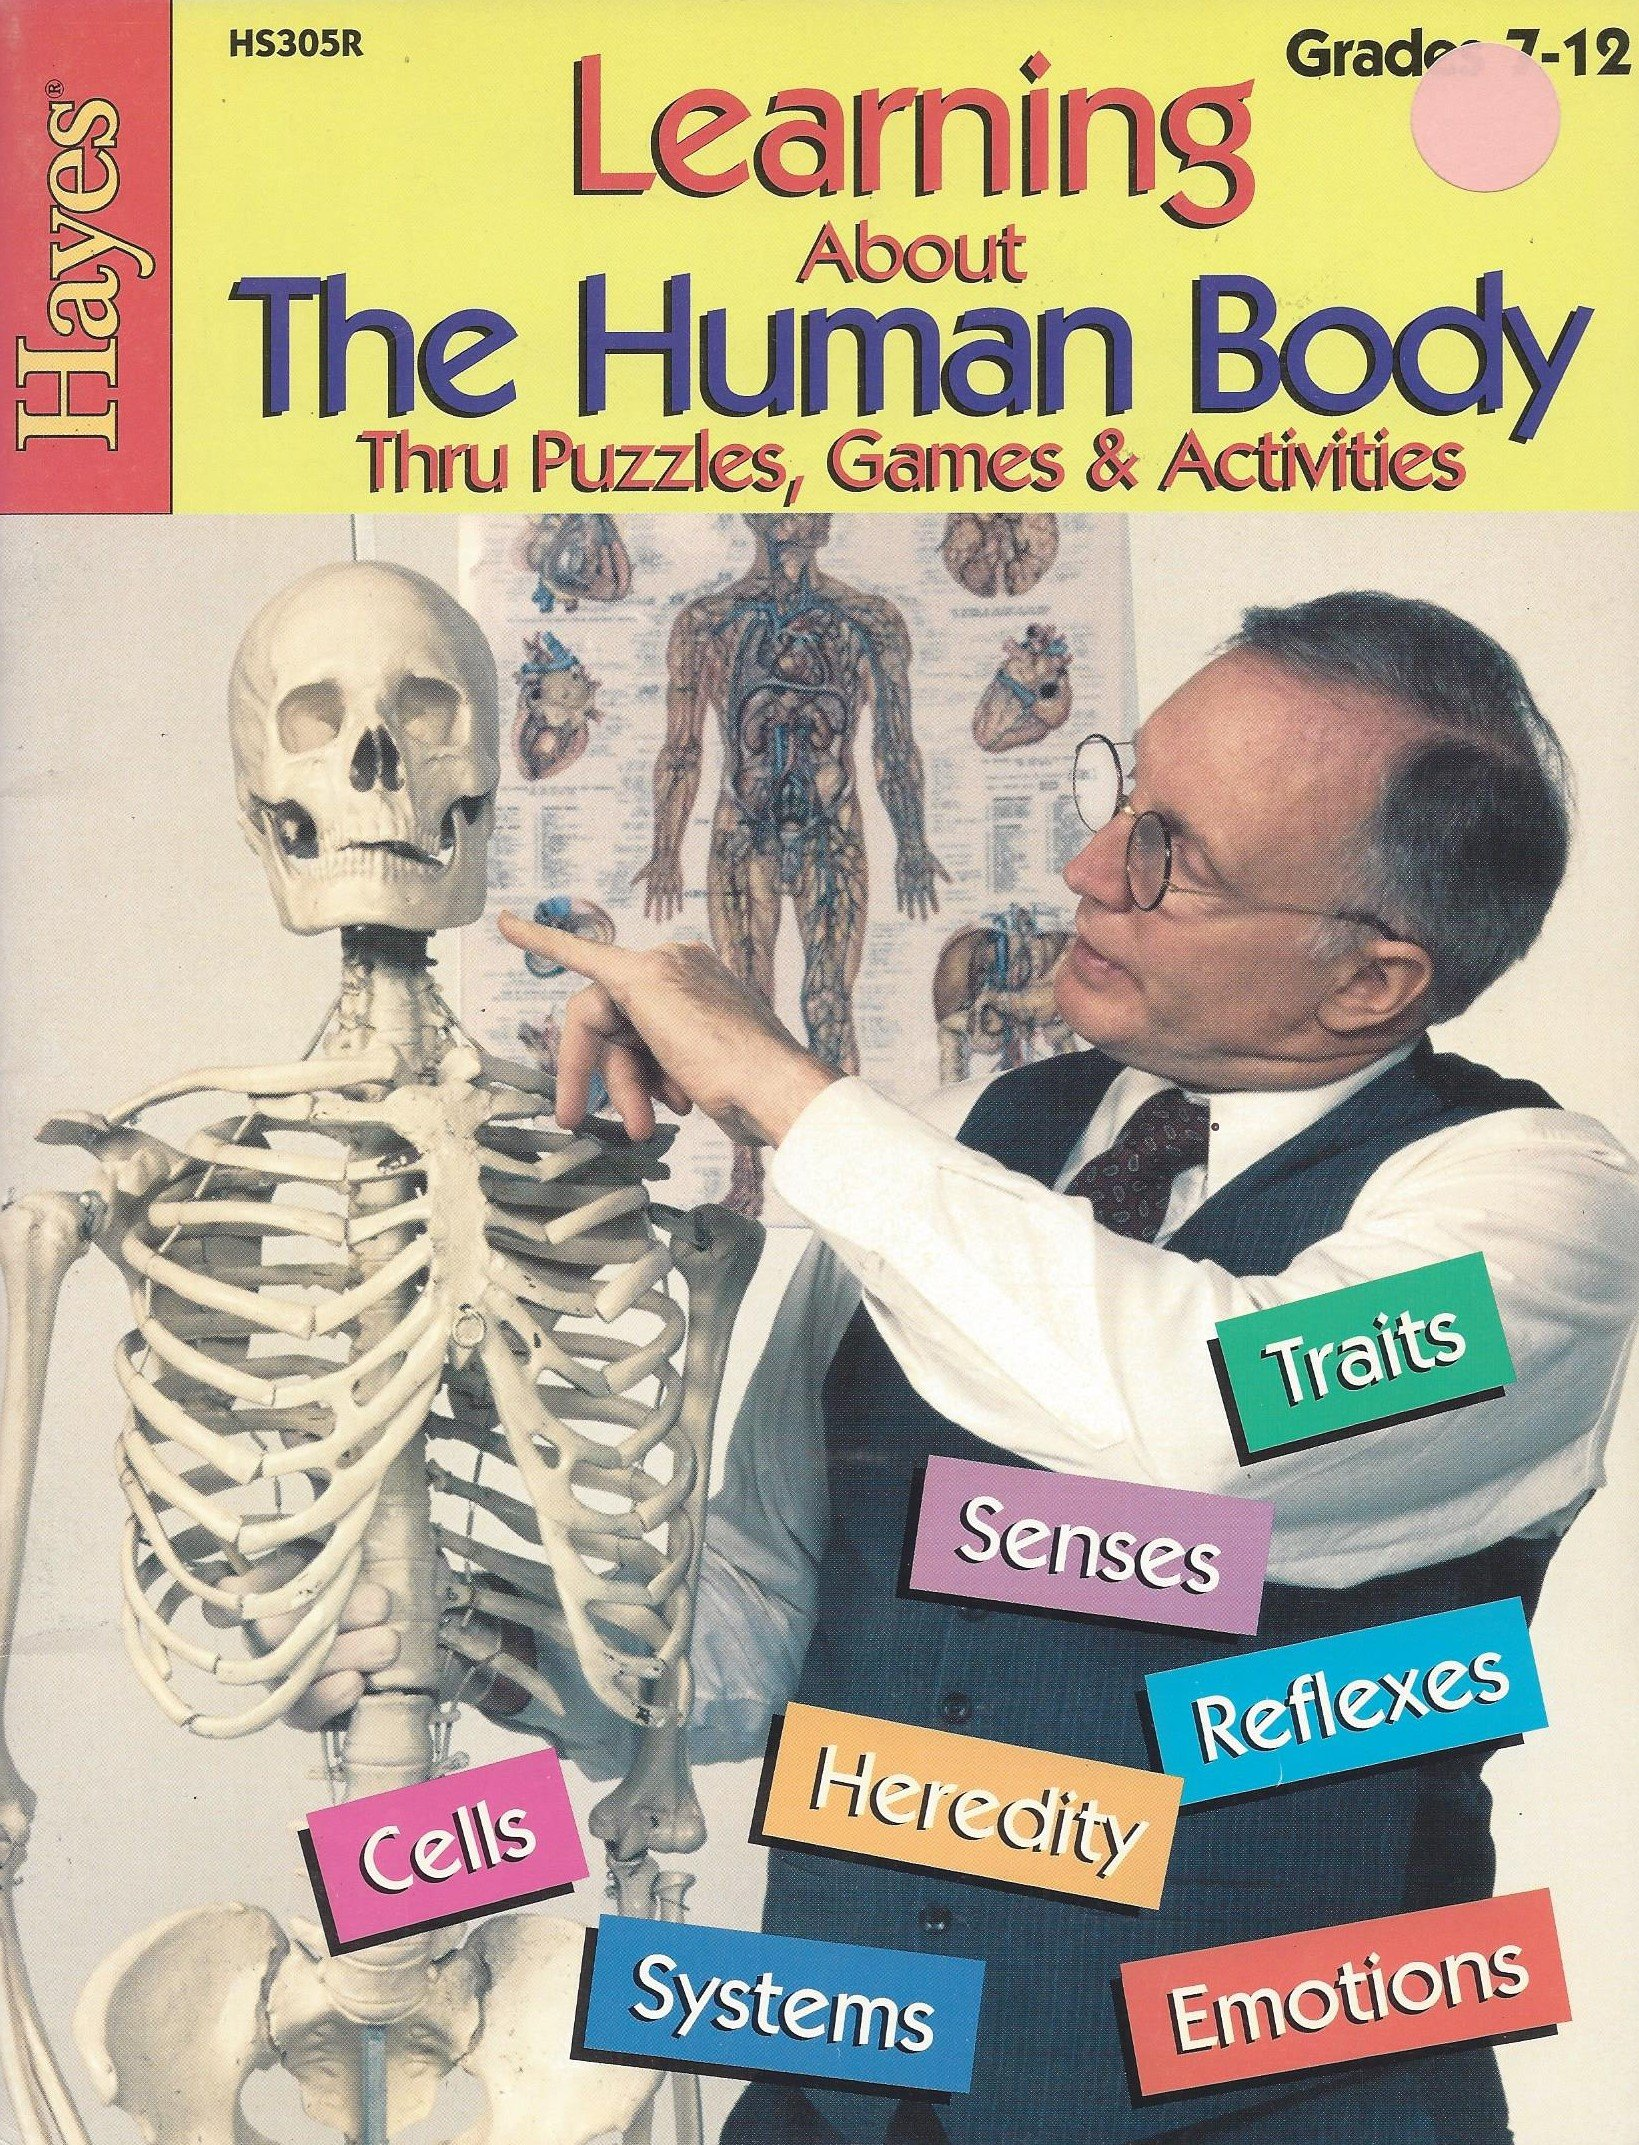 Learning About The Human Body Thru Puzzles, Games & Activities Grade 7-12 PDF